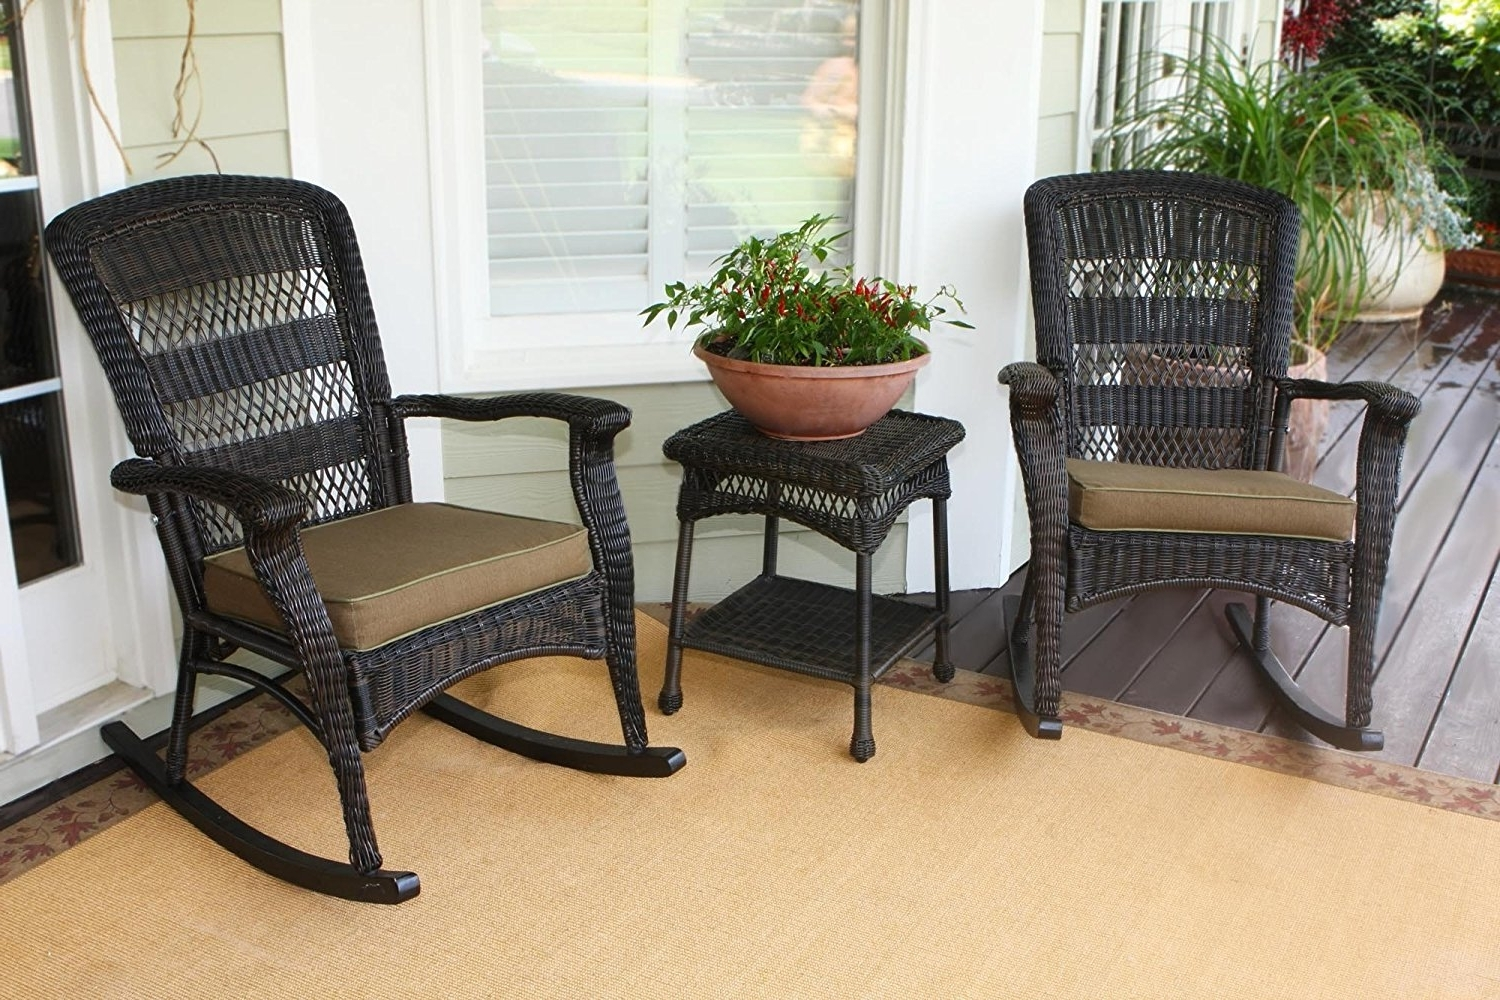 Black Patio Rocking Chairs With Most Recent Outdoor Rocking Chair Cushions Home : Beautiful Outdoor Rocking (View 17 of 20)